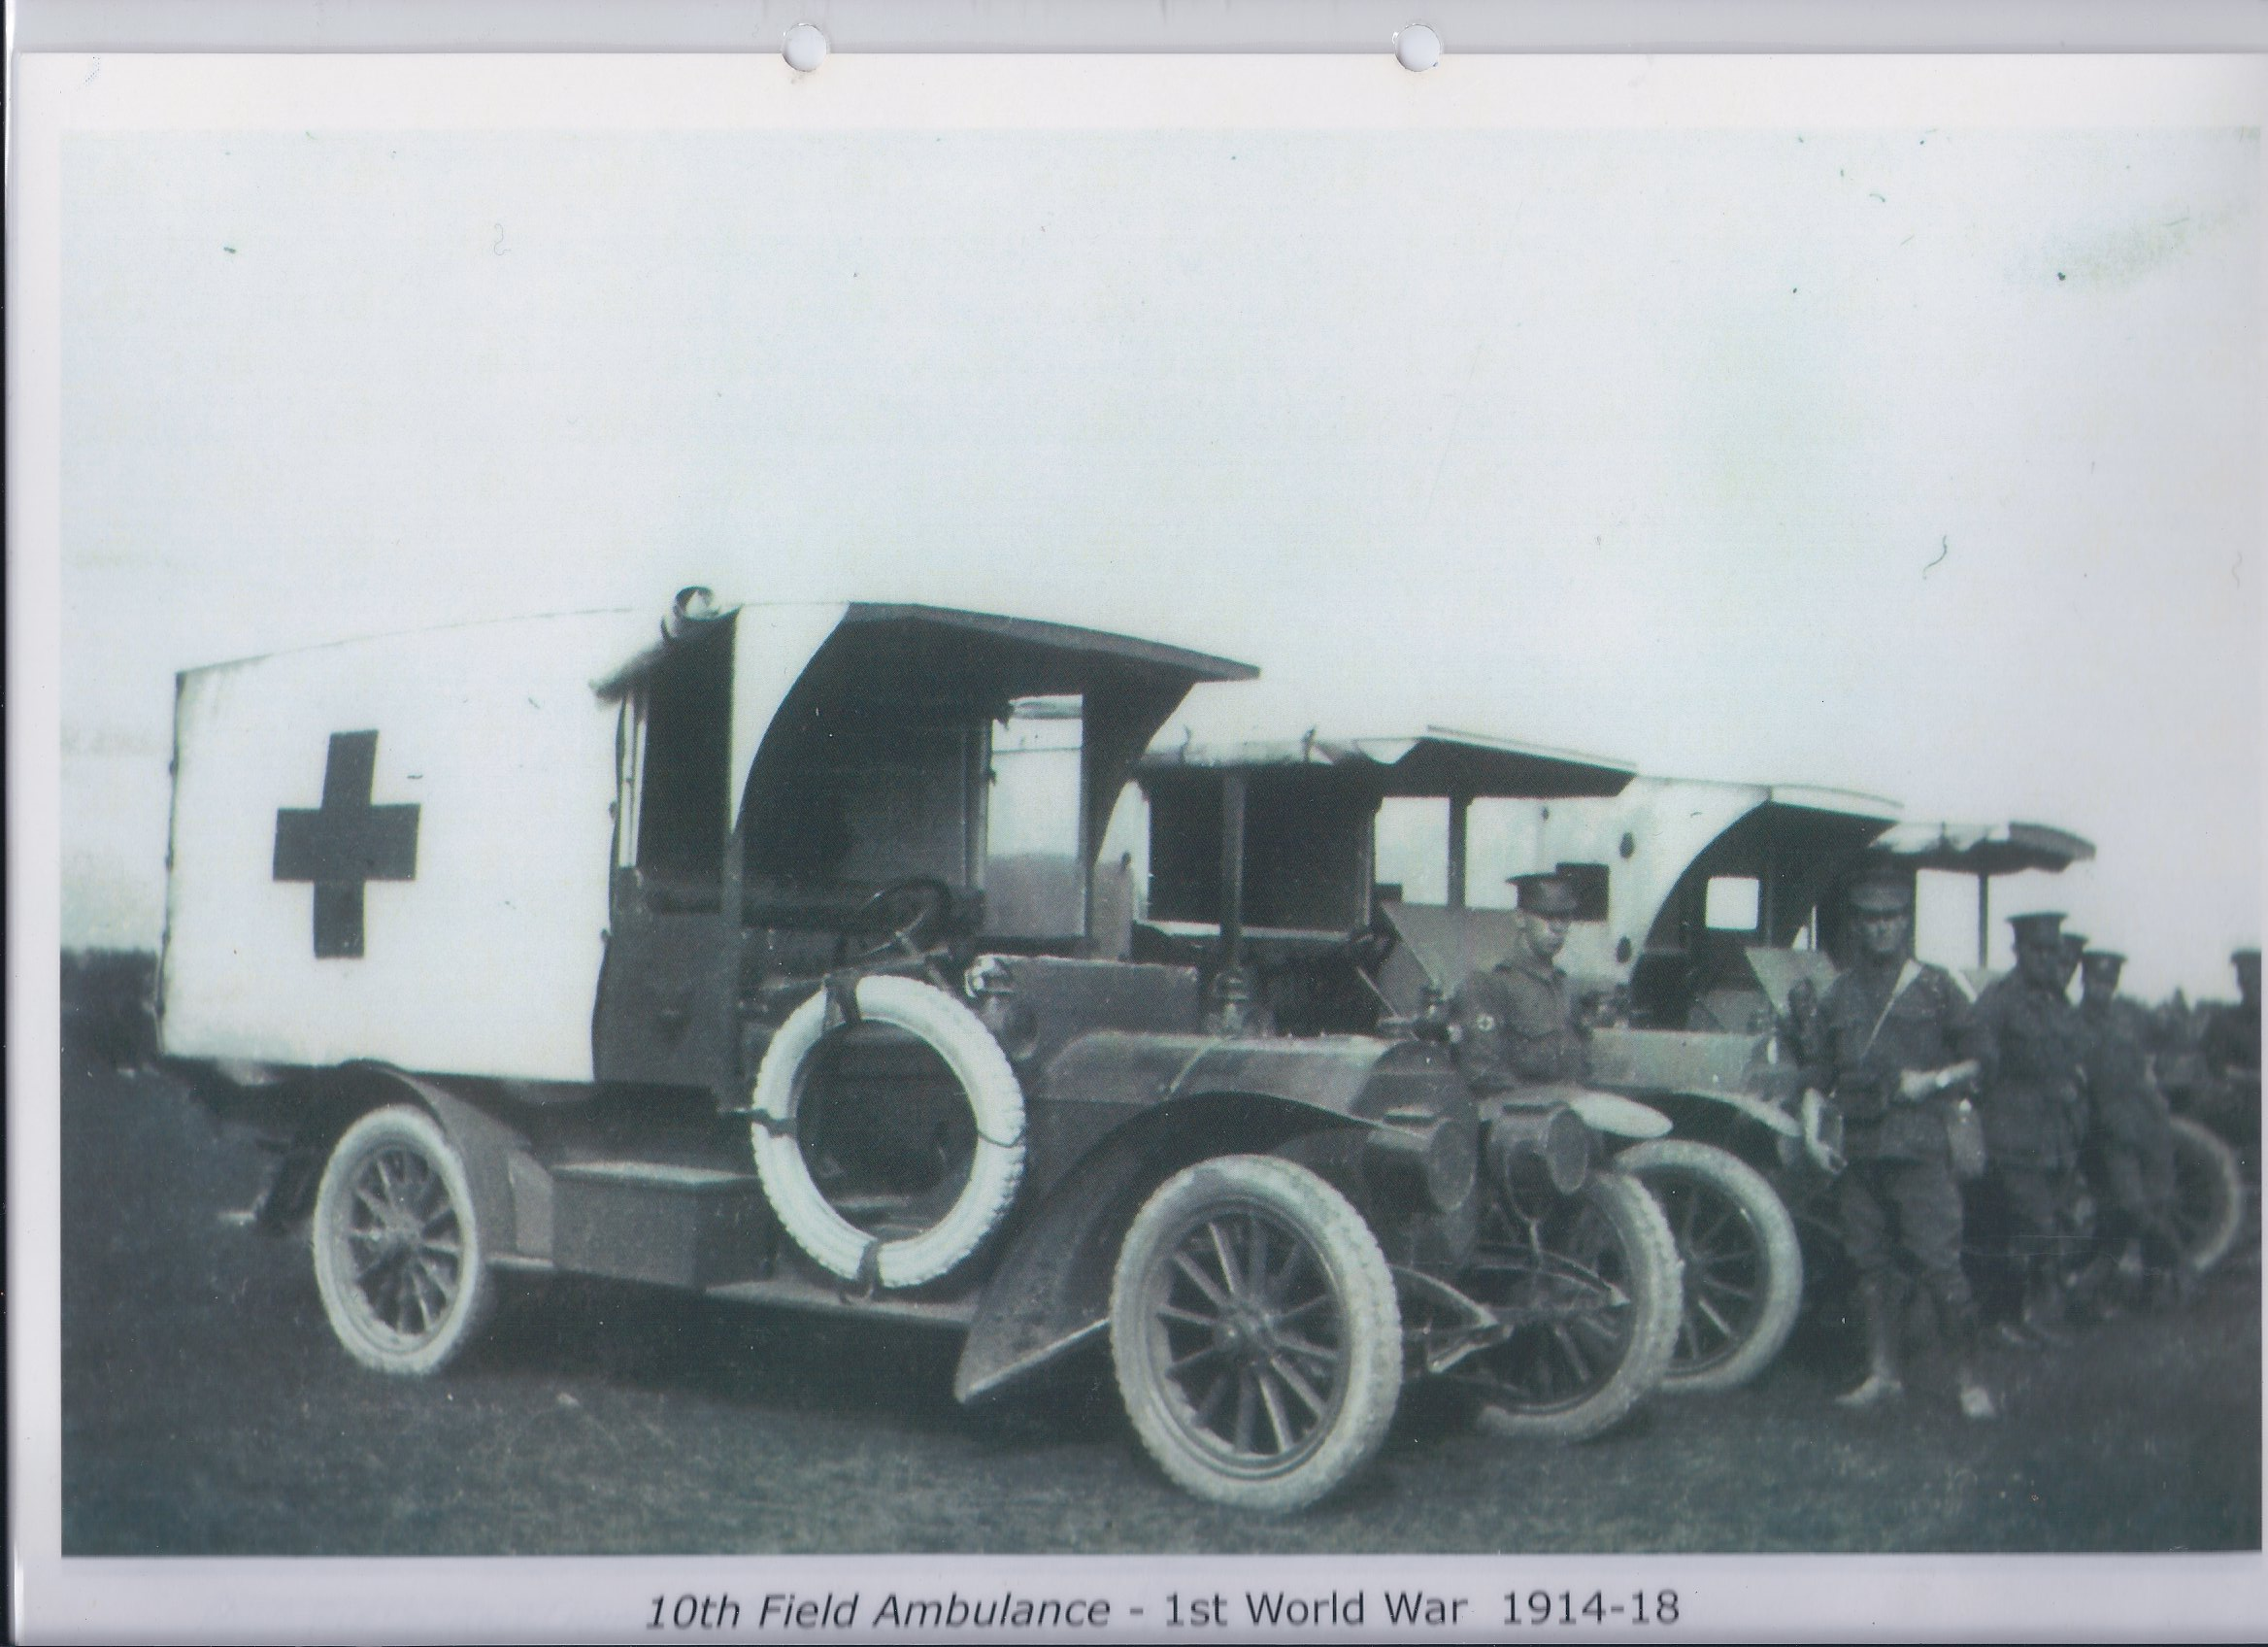 10th Field Ambulance - 1st World War 1914-1918